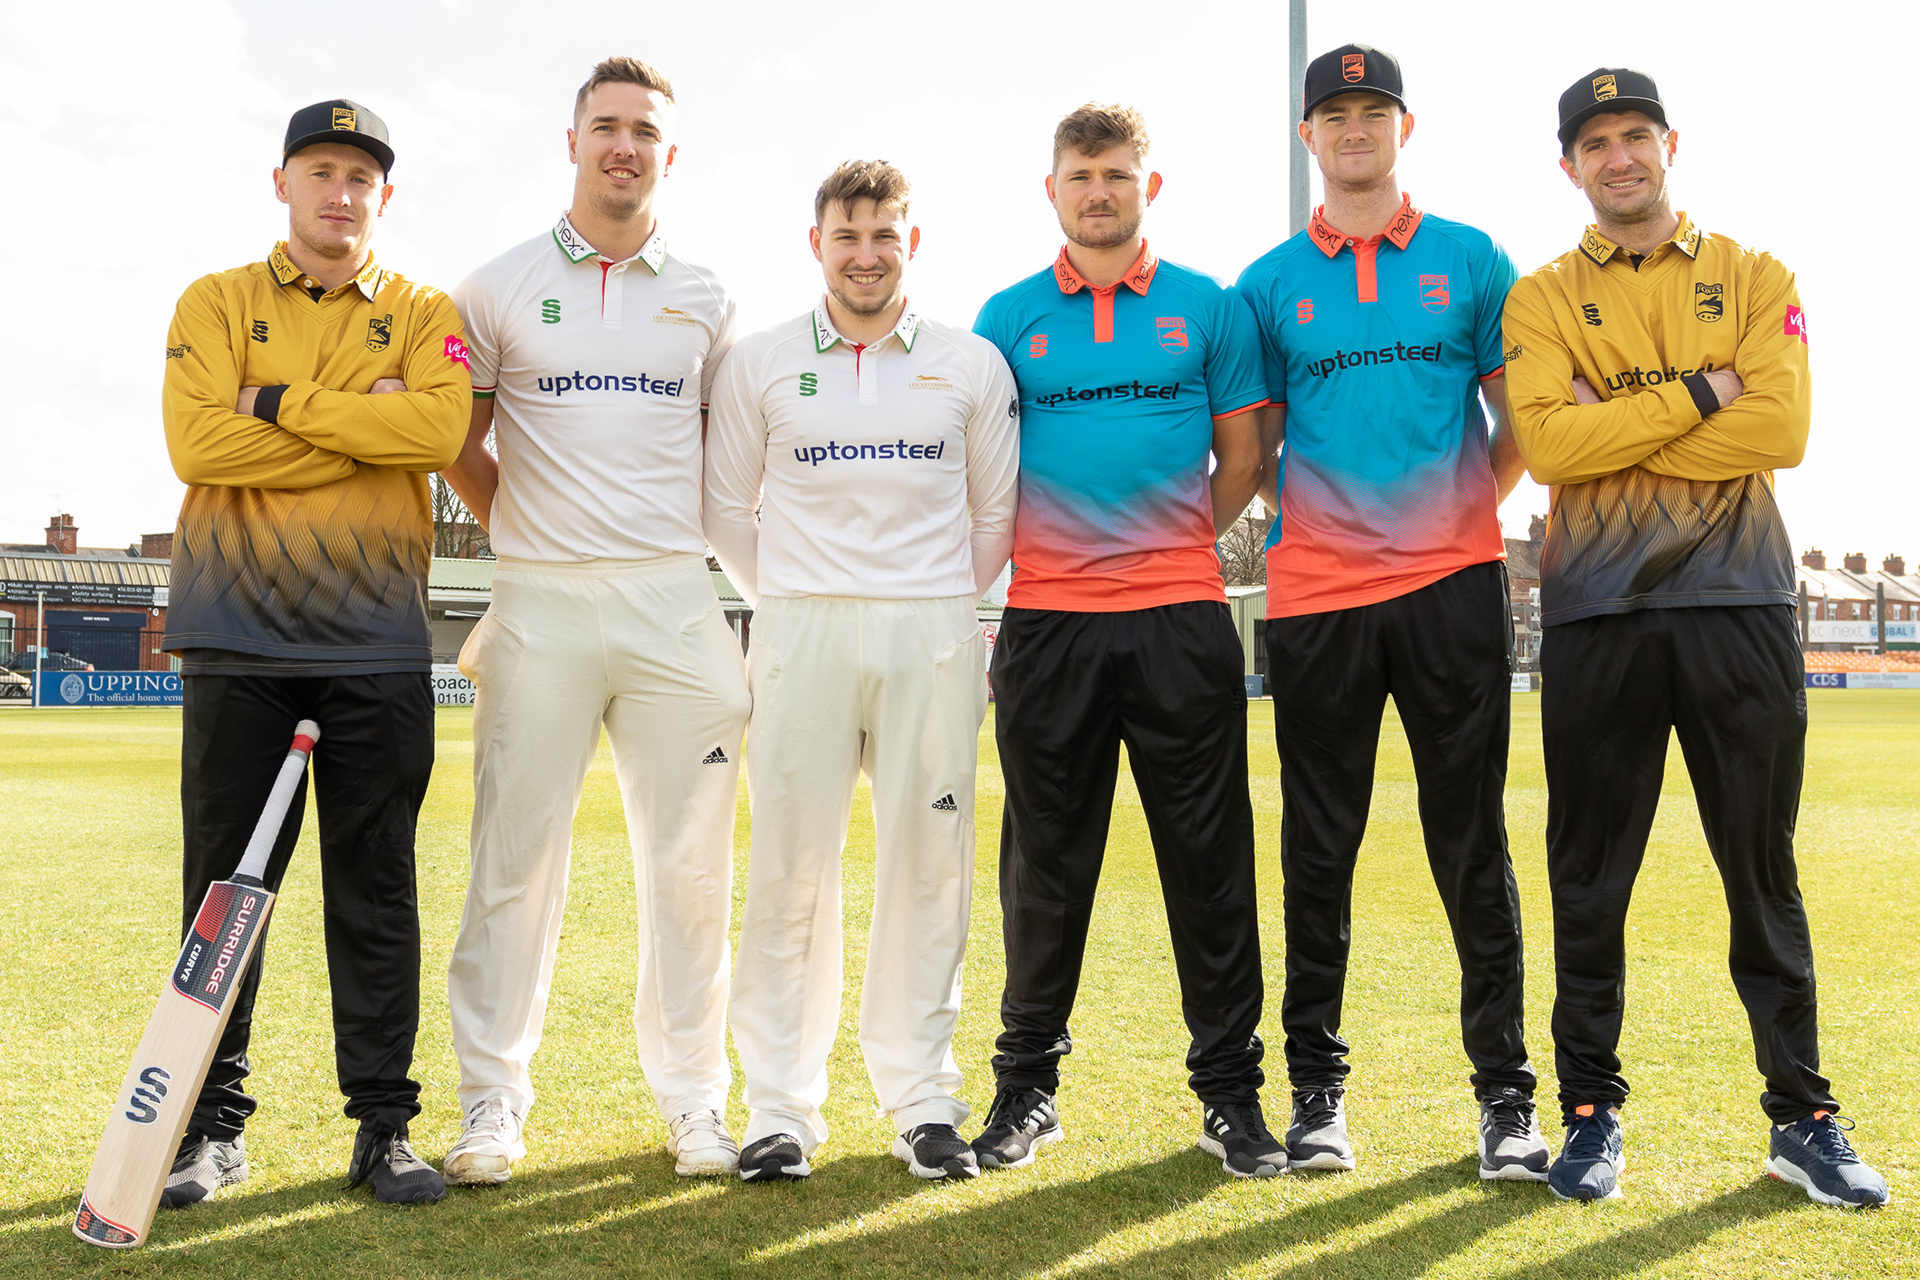 Foxes Reveal All-Inclusive Cricket Kit for the First Time